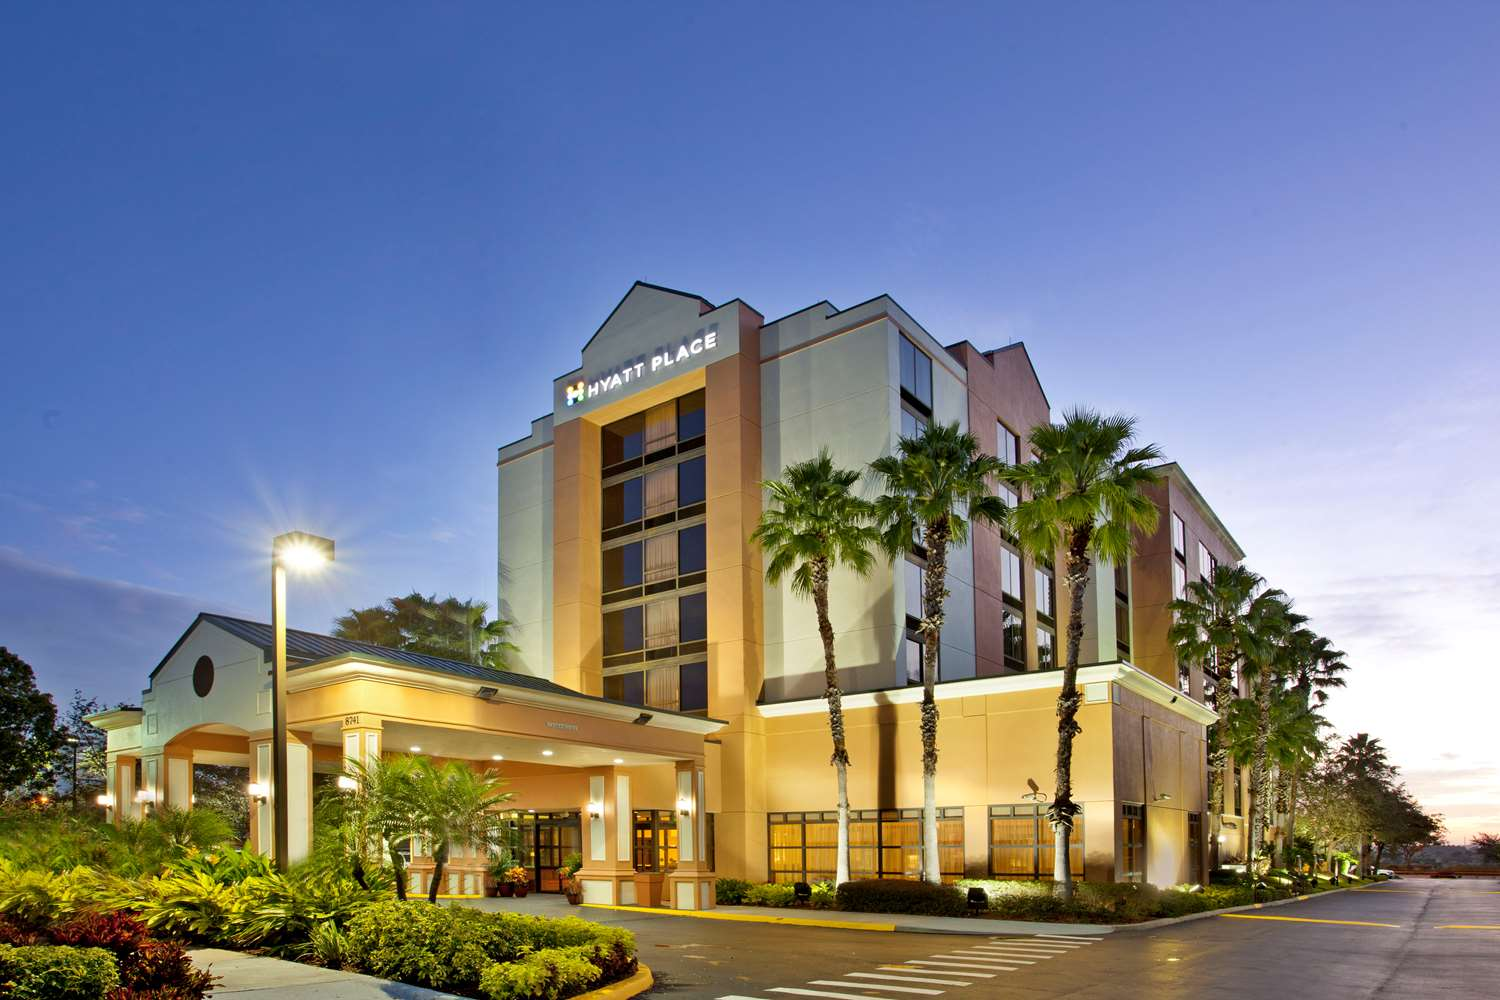 Hyatt Place Hotel Convention Center Orlando